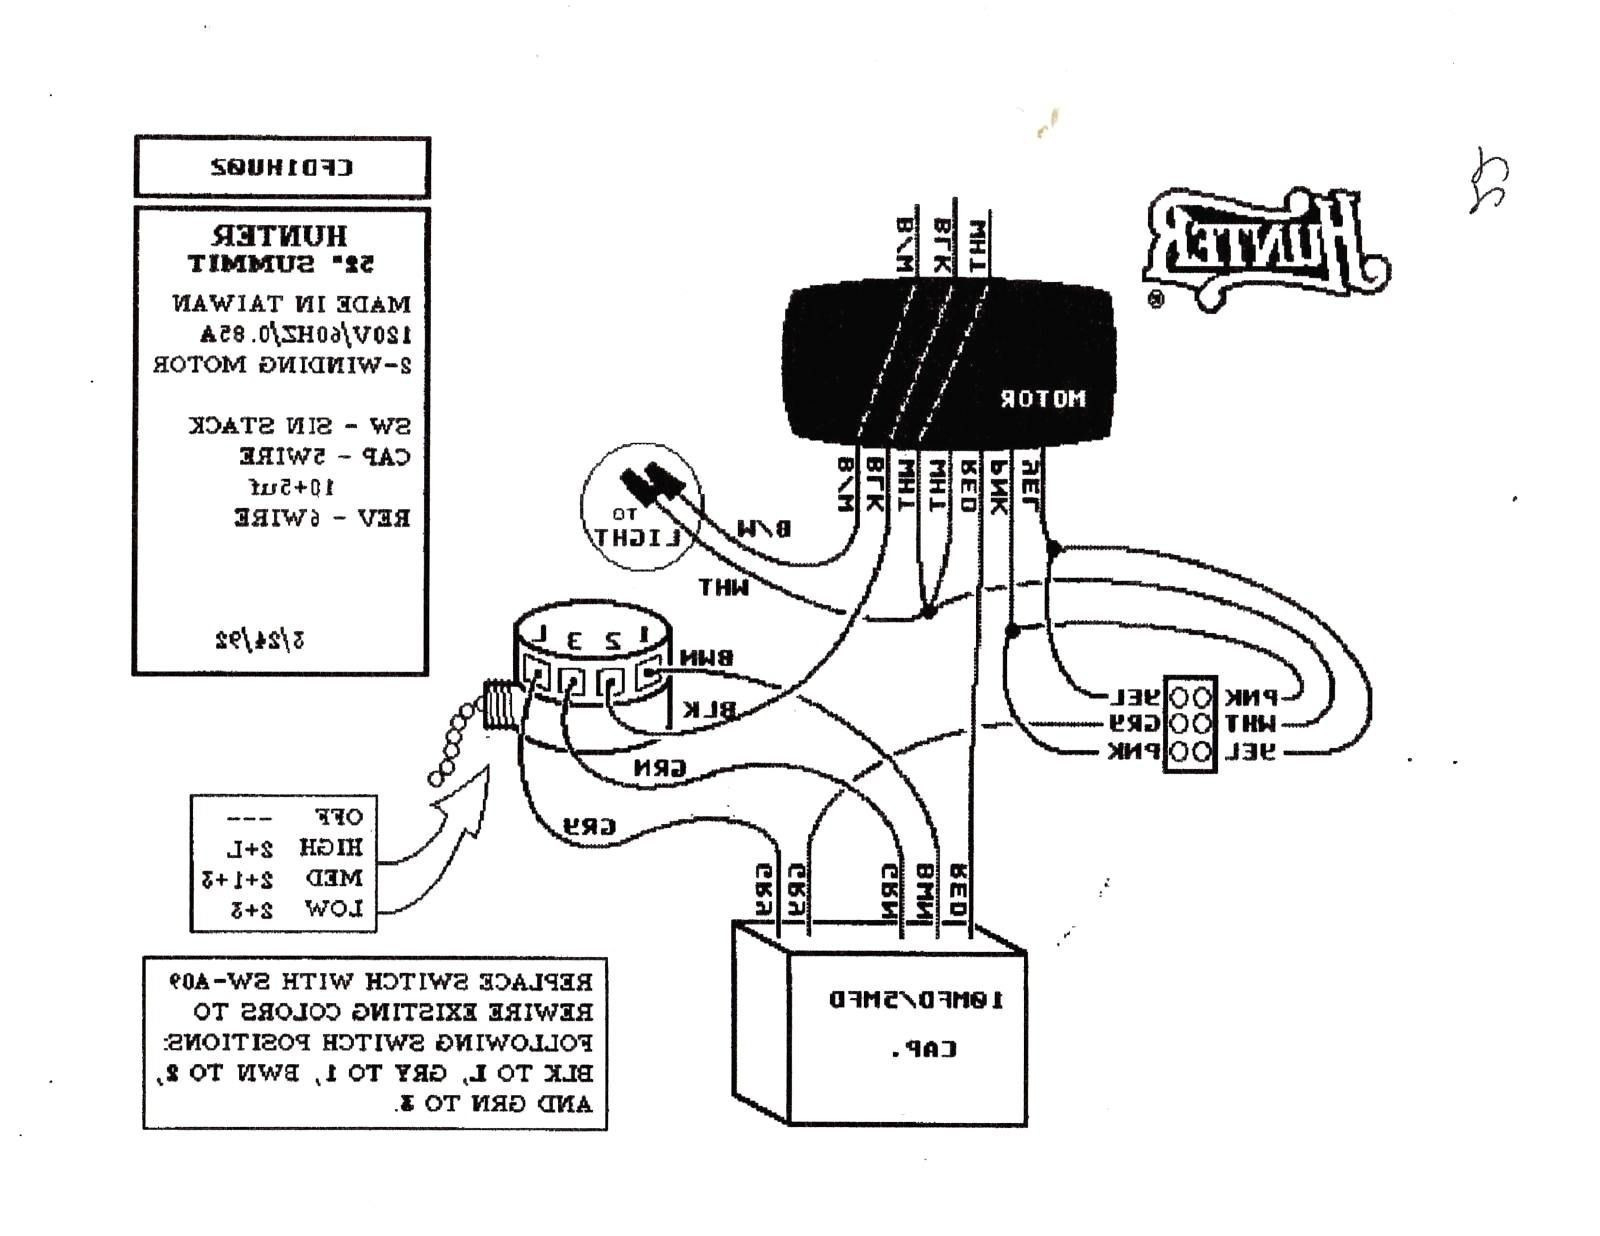 ceiling fan wiring diagram 3 speed Collection-Wiring Diagram For Fan Valid 3 Speed Ceiling Fan Switch Wiring Diagram Best Wiring Diagram For 17-f